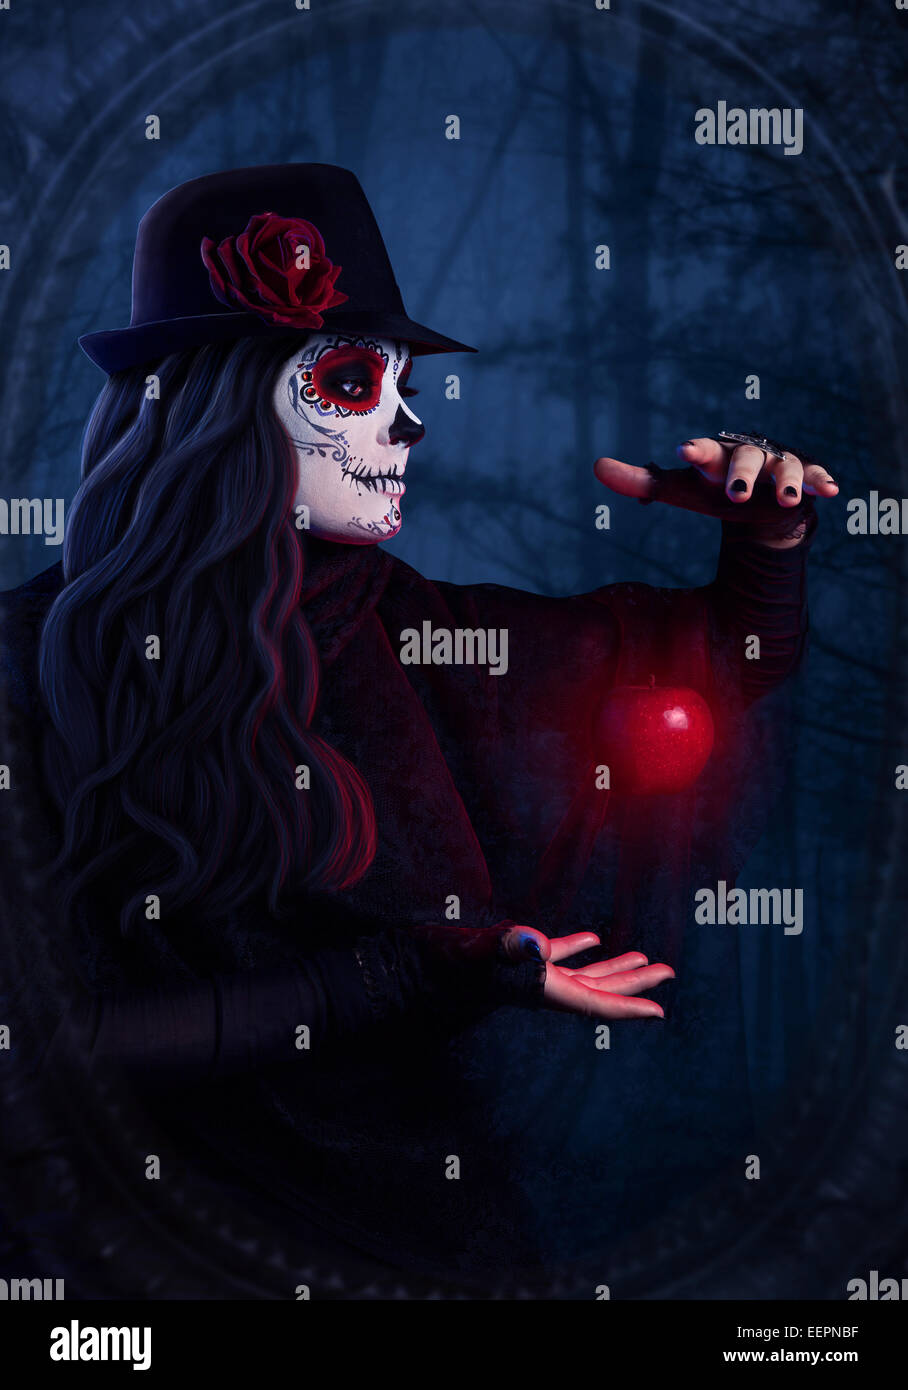 Woman with sugar skull makeup with levitating red apple at dark forest background - Stock Image